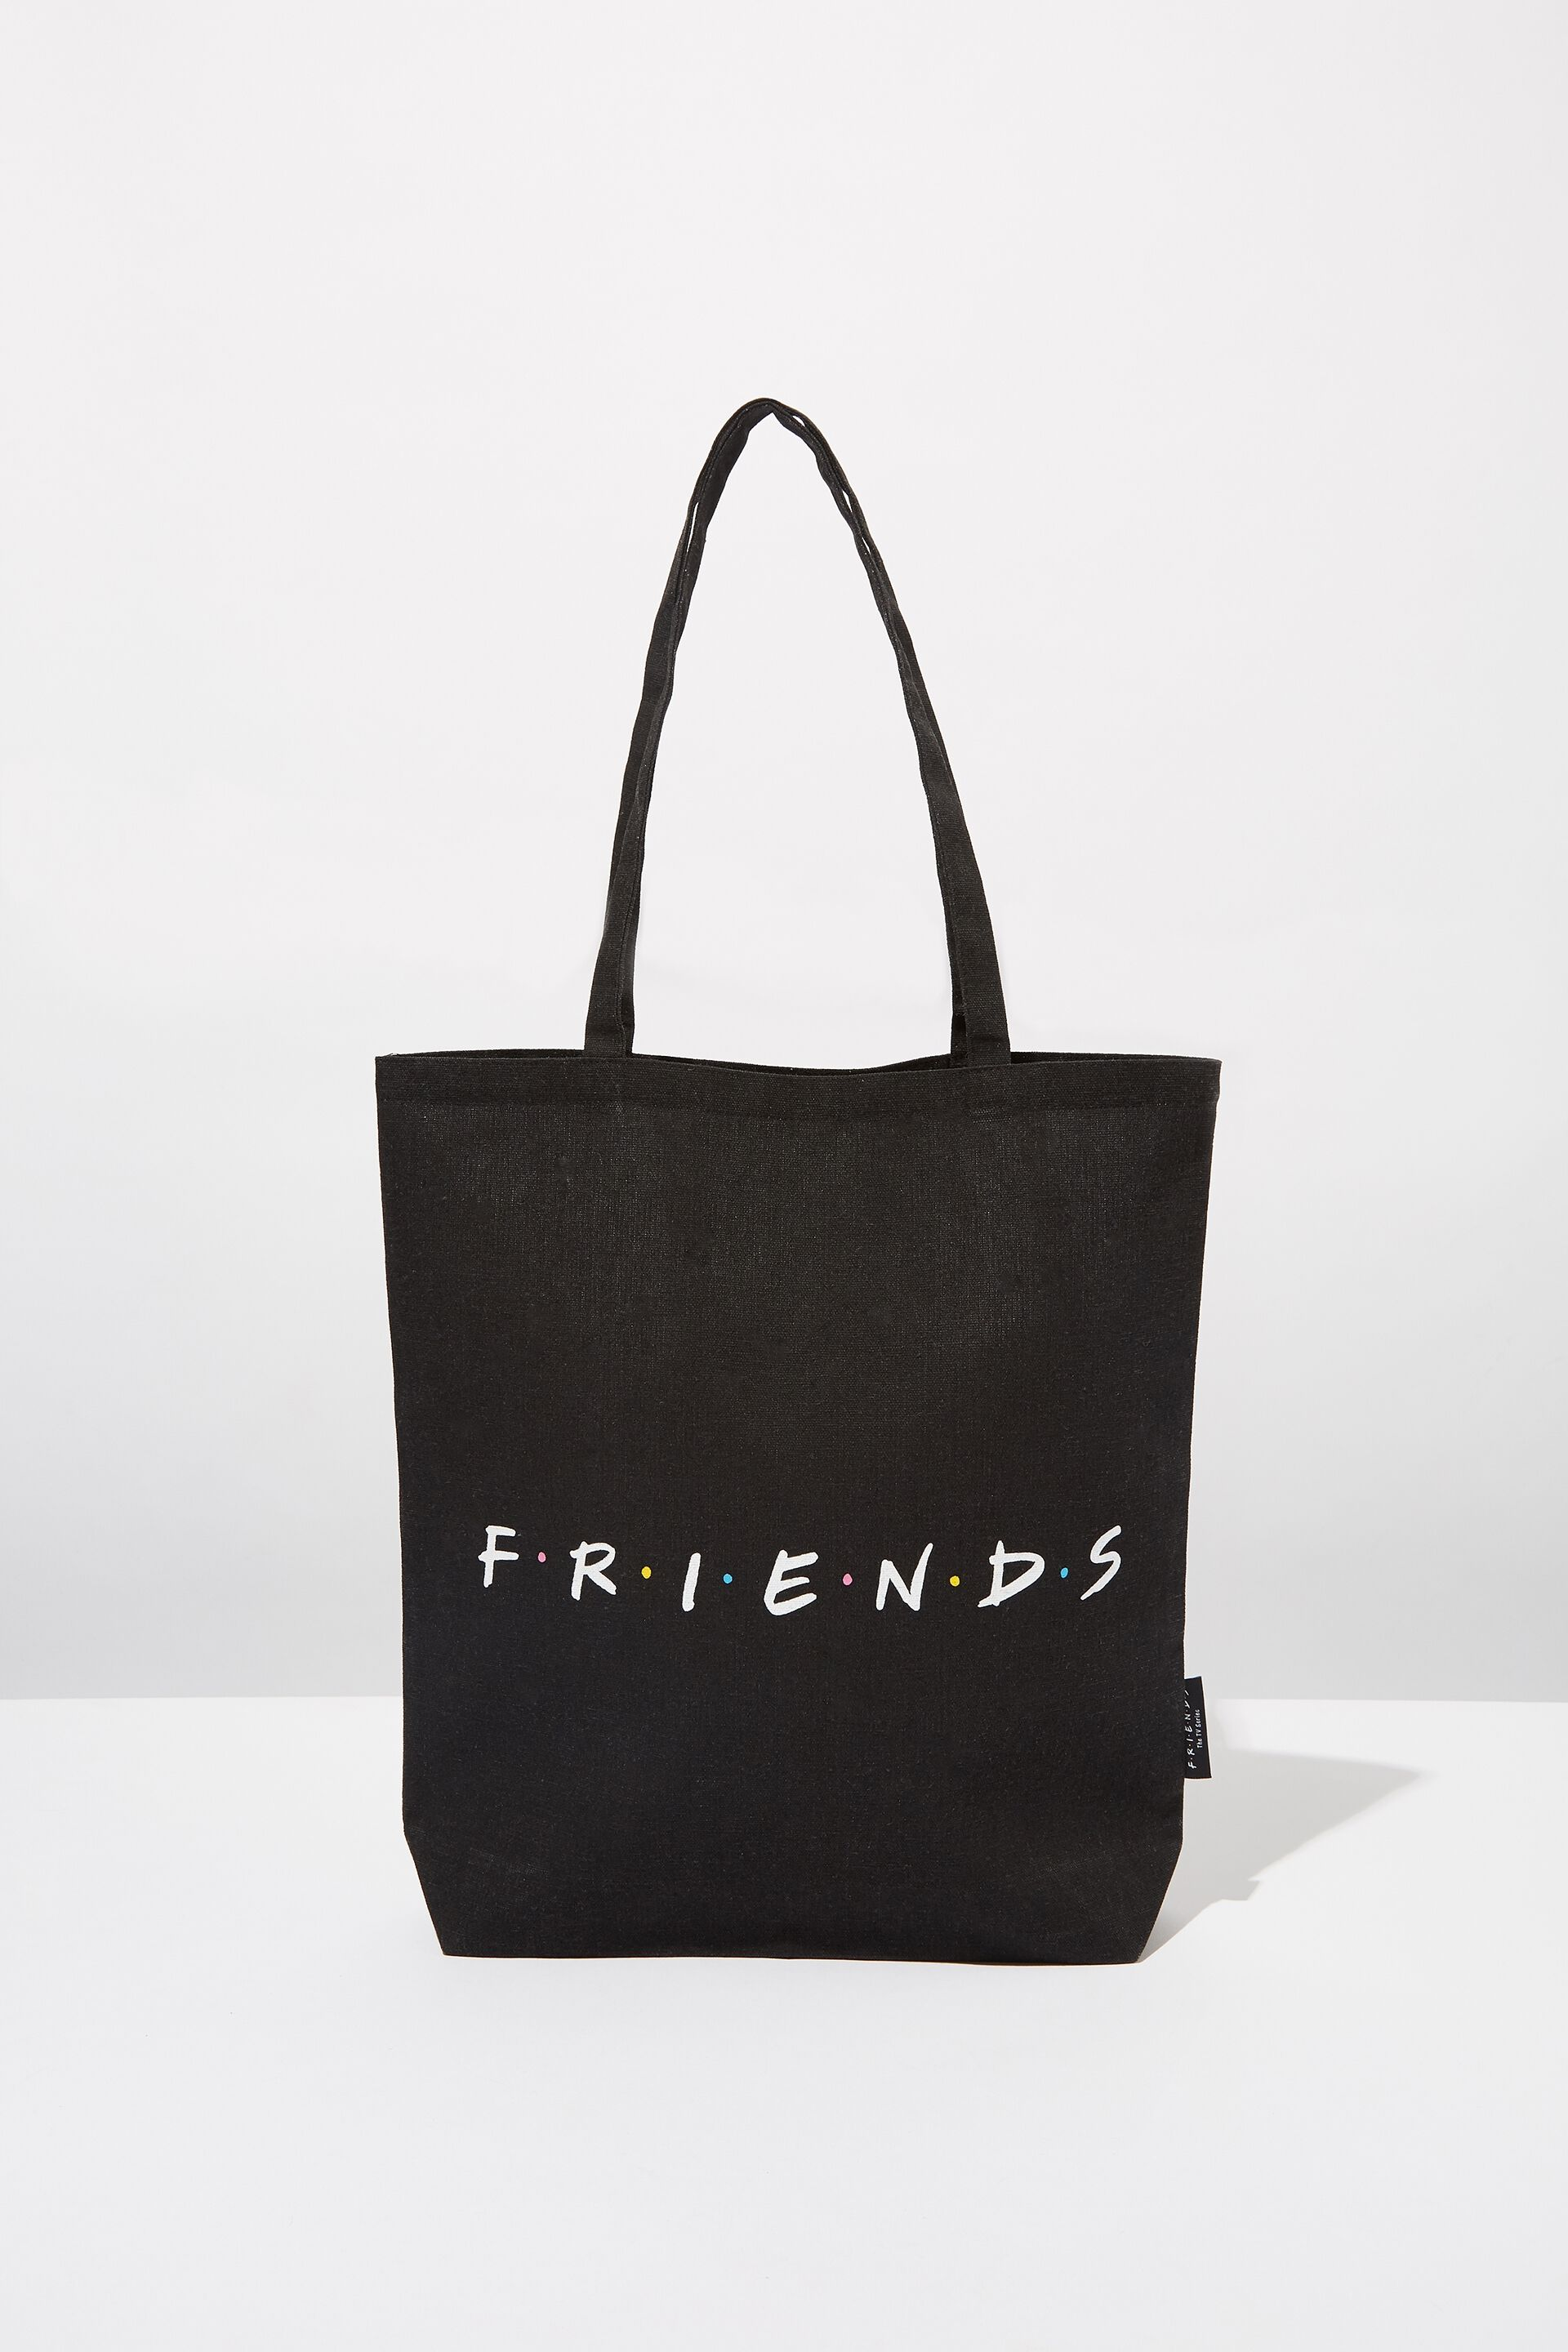 BagsCharity Resuable On Foundation Cotton Tote Shopping D9HWbeYE2I